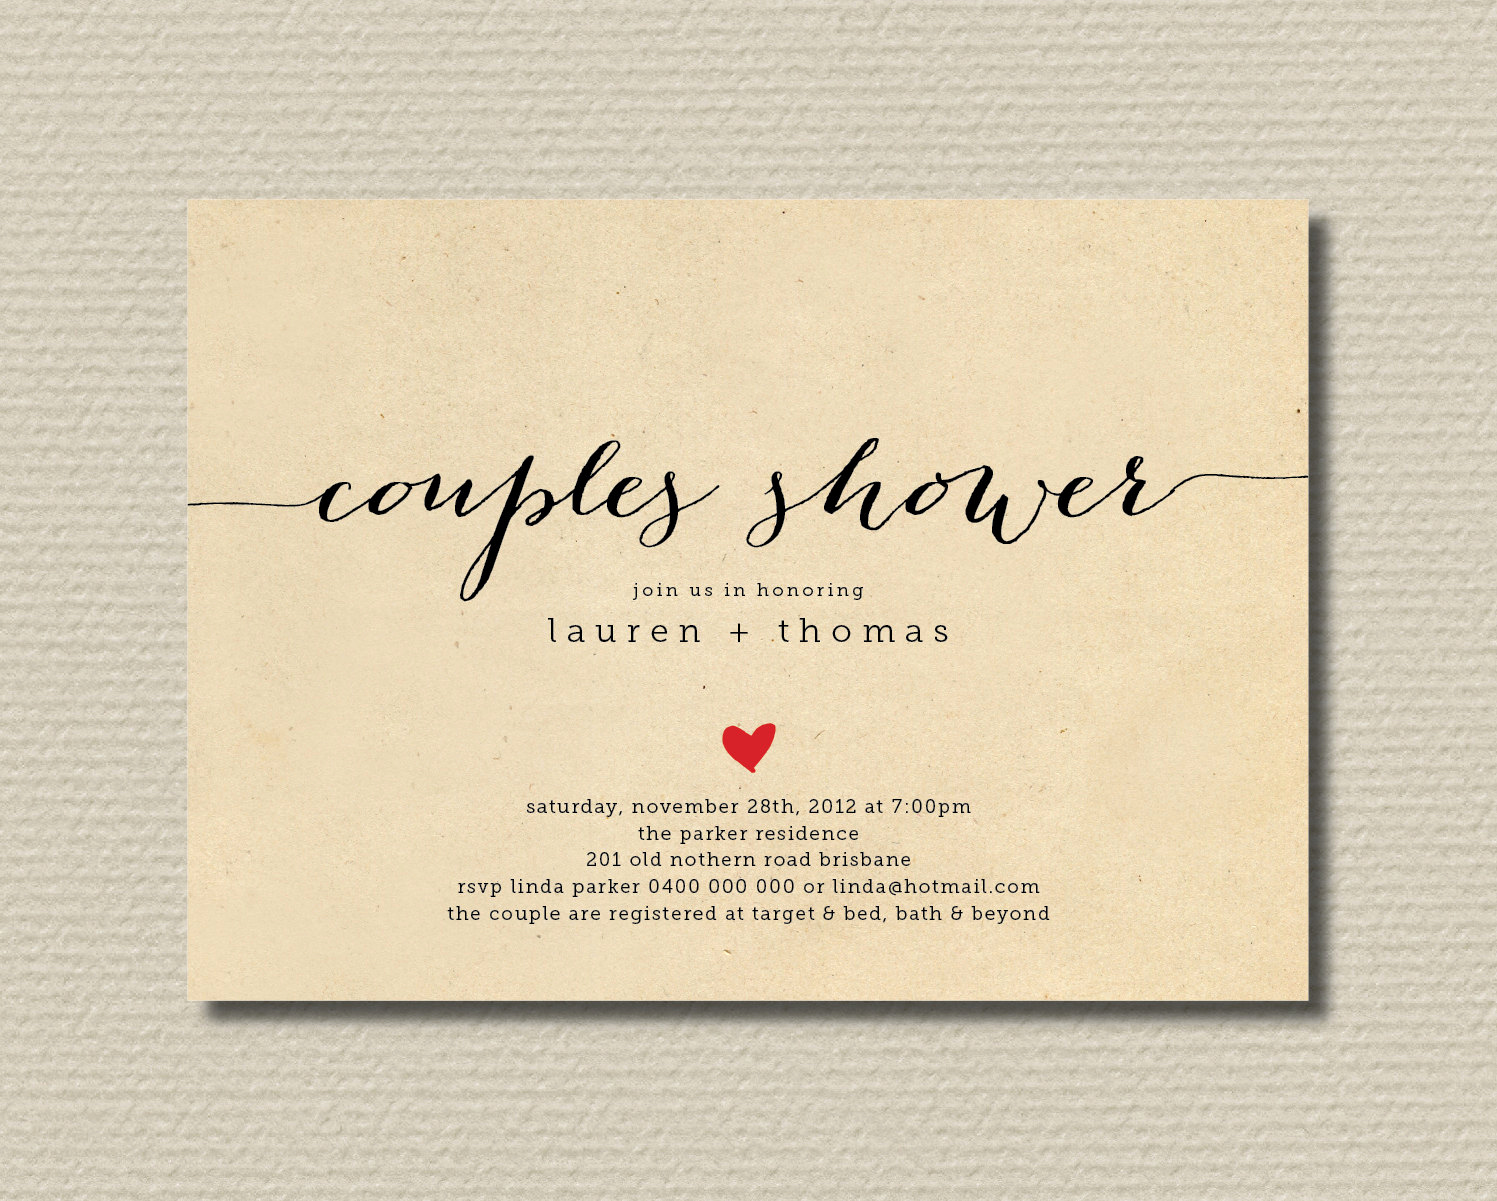 Couples Wedding Shower Invitation Wording New Printable Couples Shower Invitation Simple & by Rosiedaydesign